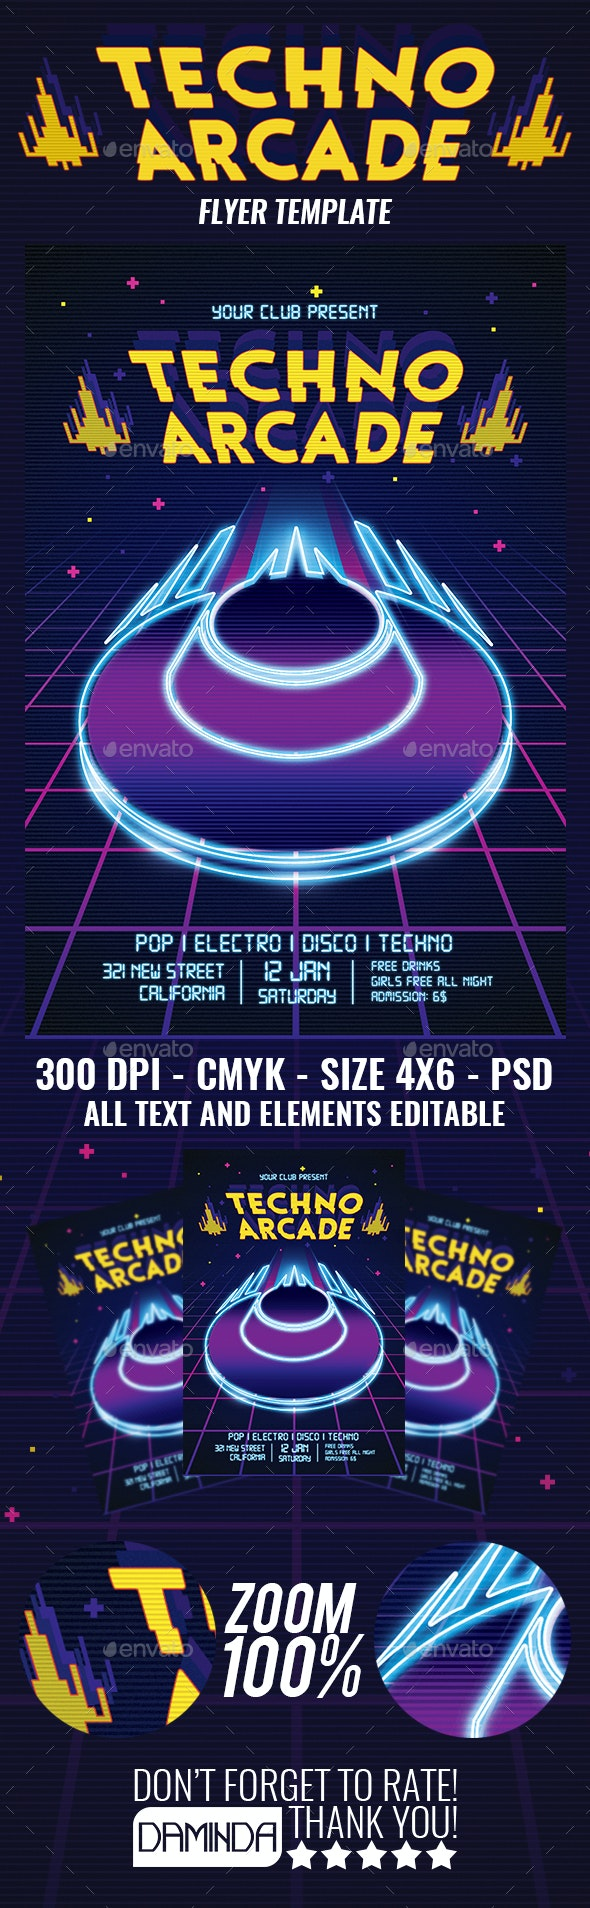 Techno Arcade 2019 Flyer Template - Clubs & Parties Events